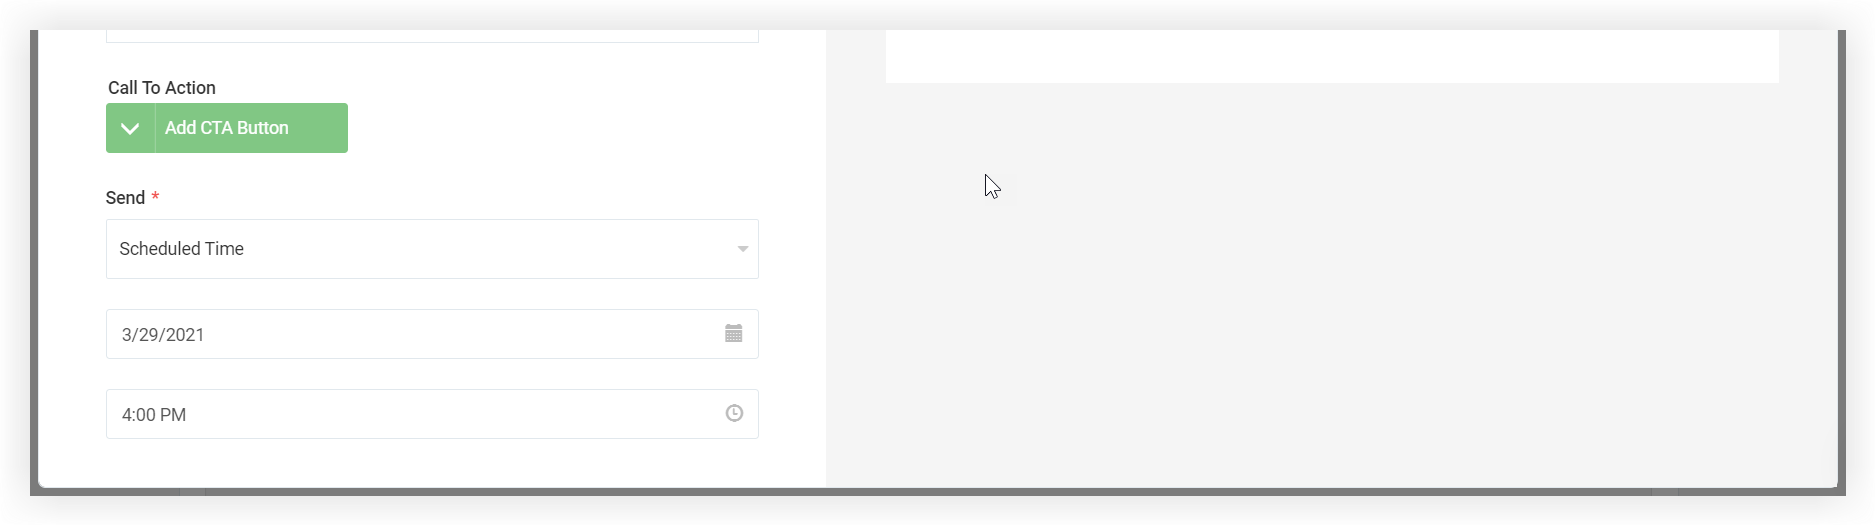 Screenshot of the Send portion of the New Email modal. Scheduled Time is selected.